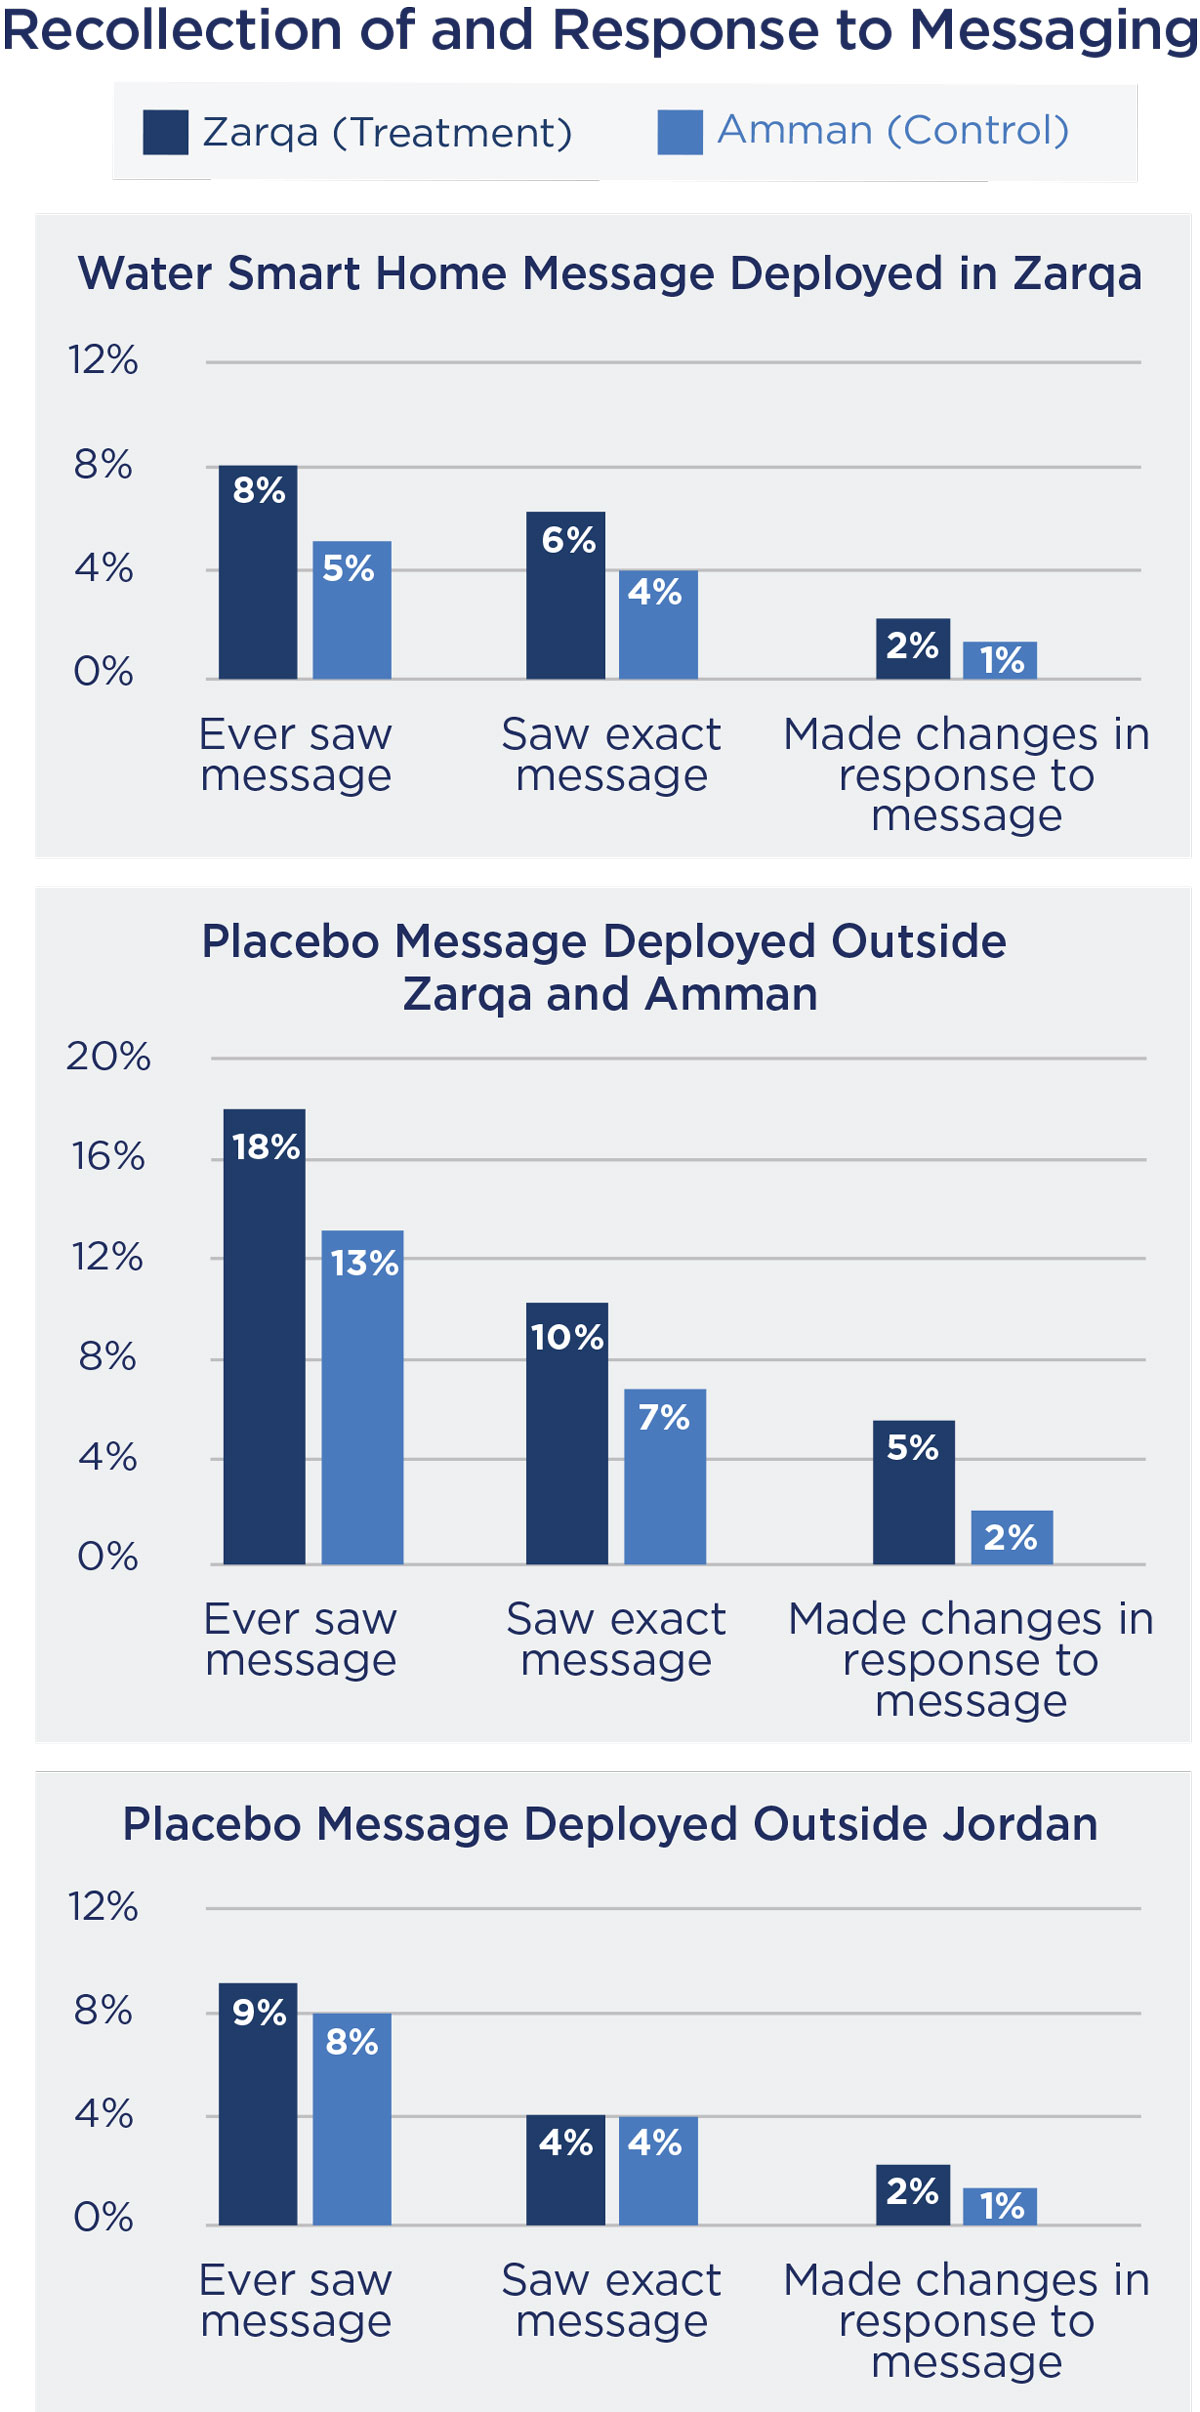 Charts: Recollection of and Response to Messaging